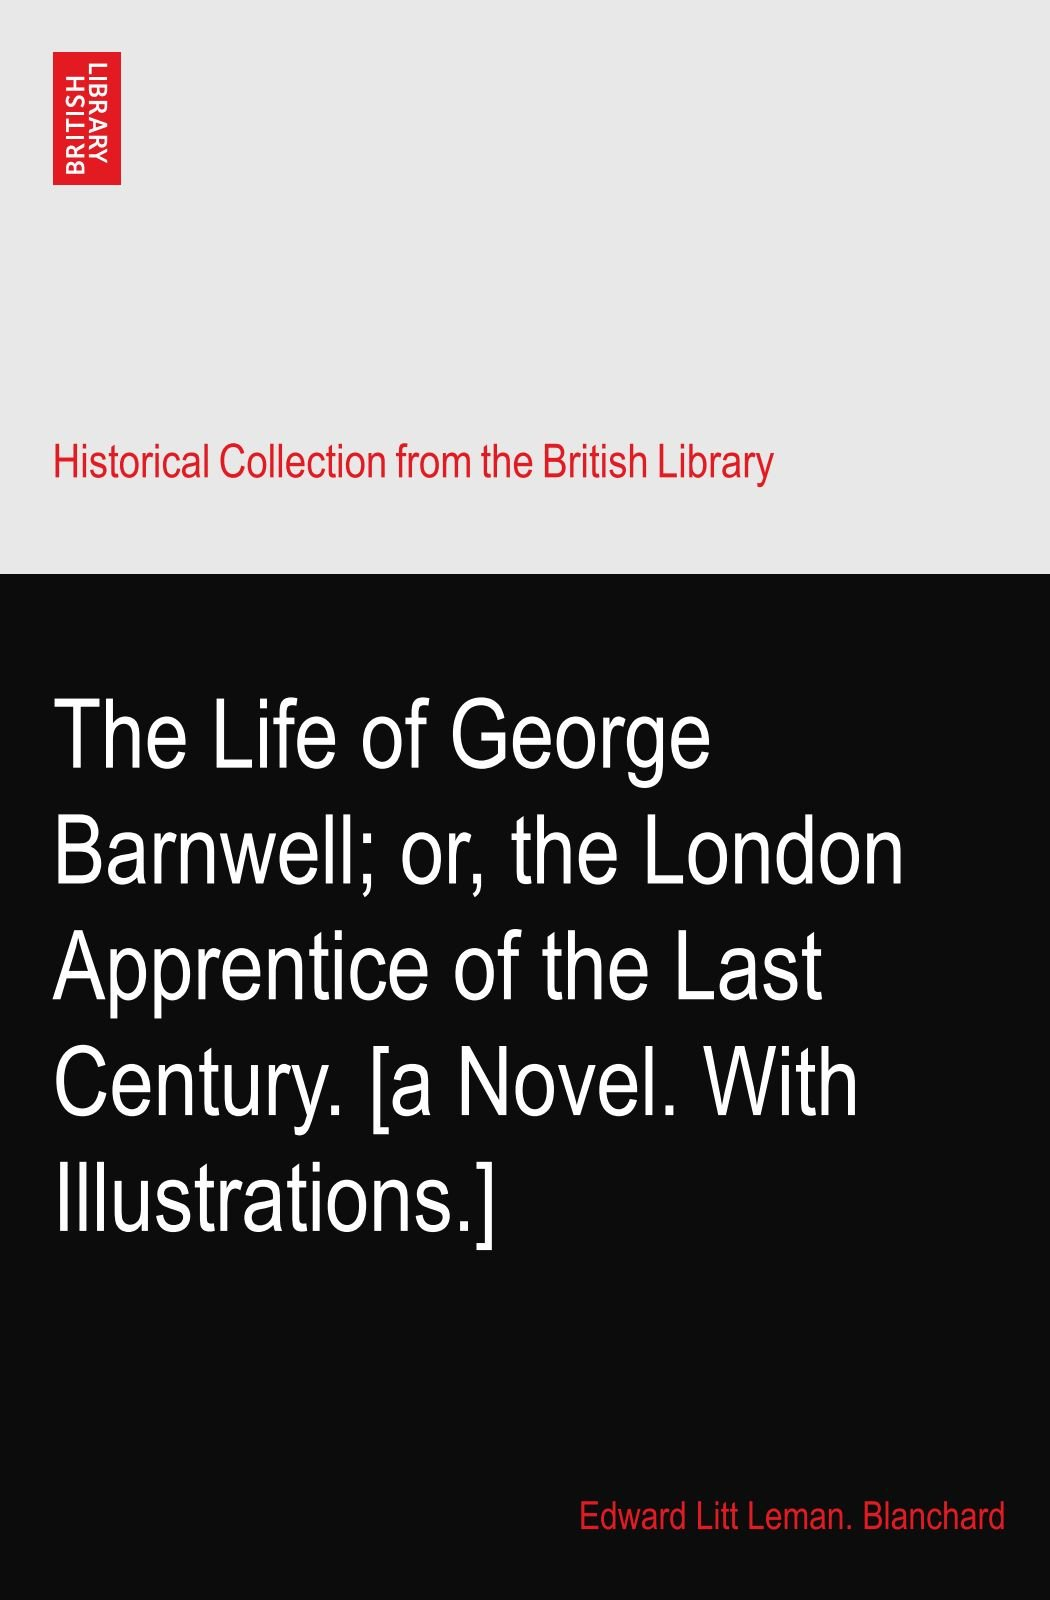 The Life of George Barnwell; or, the London Apprentice of the Last Century. [a Novel. With Illustrations.] pdf